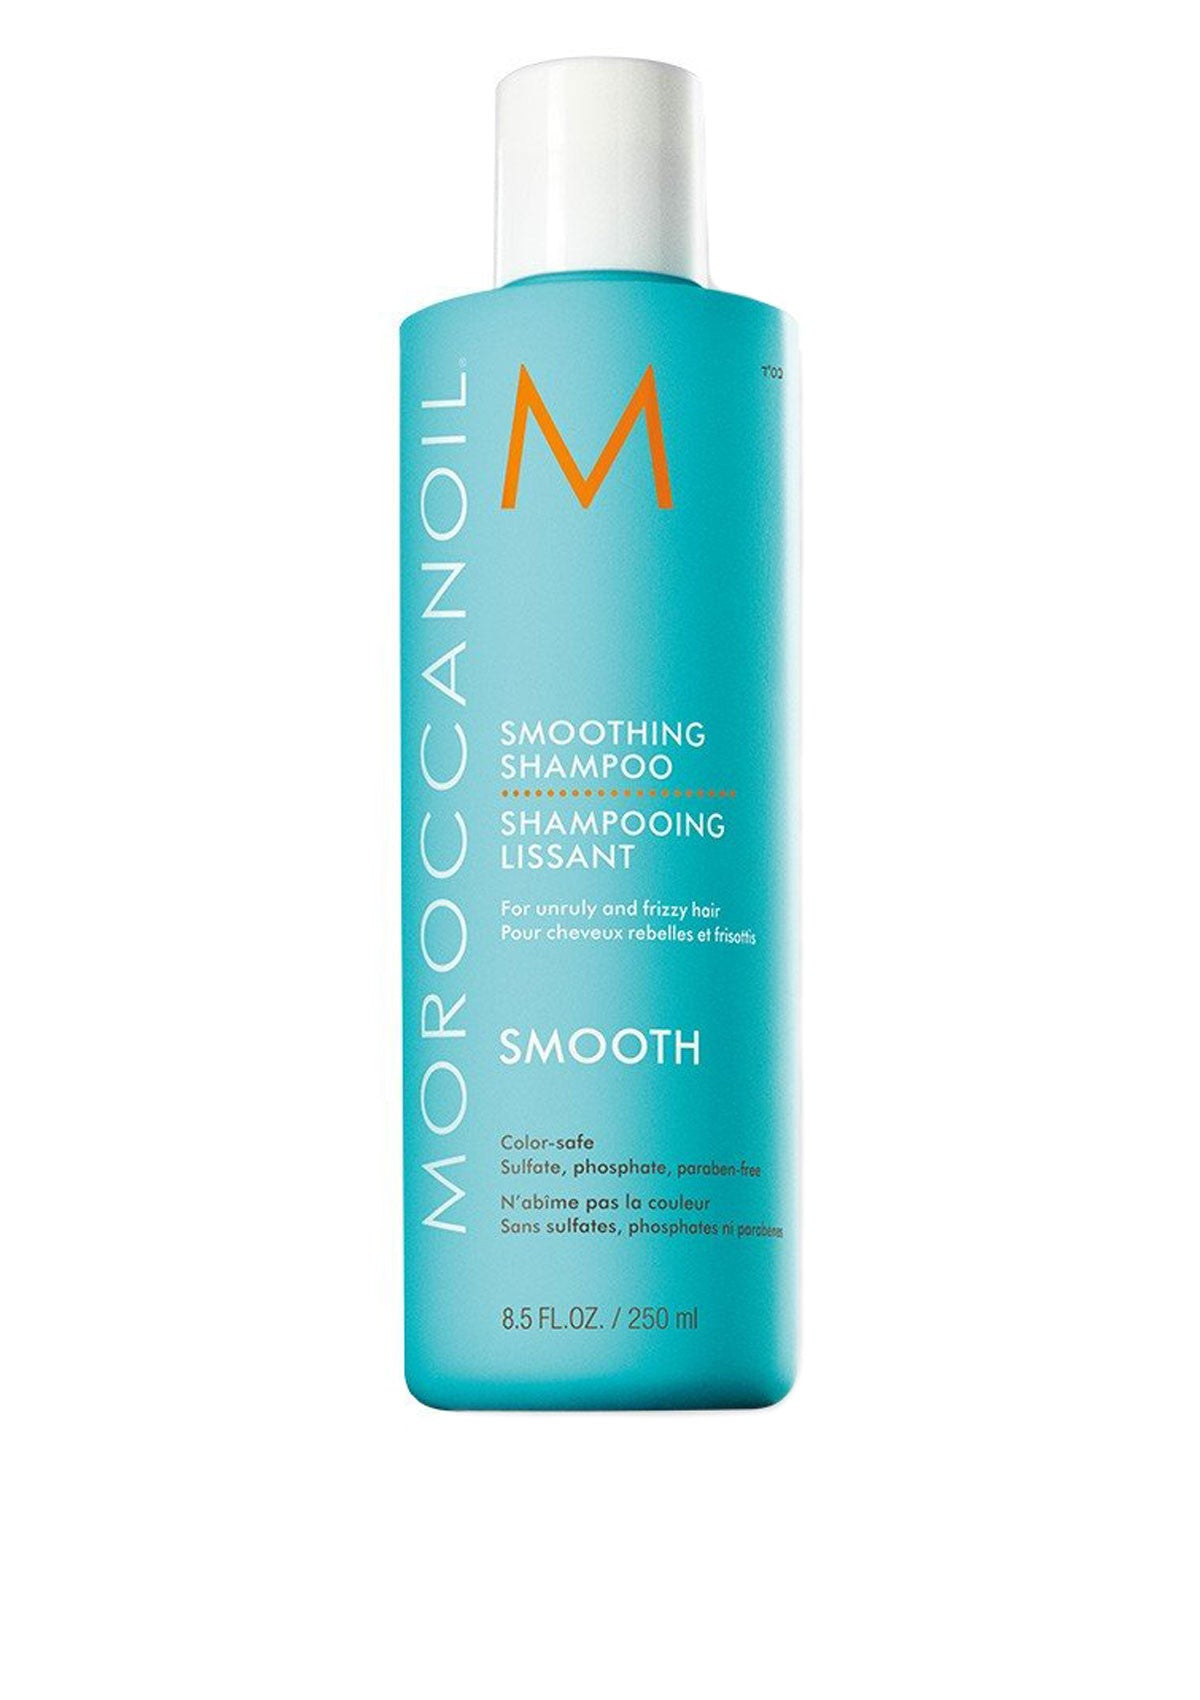 MOROCCANOIL - Smoothing Shampoo - for unruly and frizzy hair 250ml - DeadSeaShop.co.uk